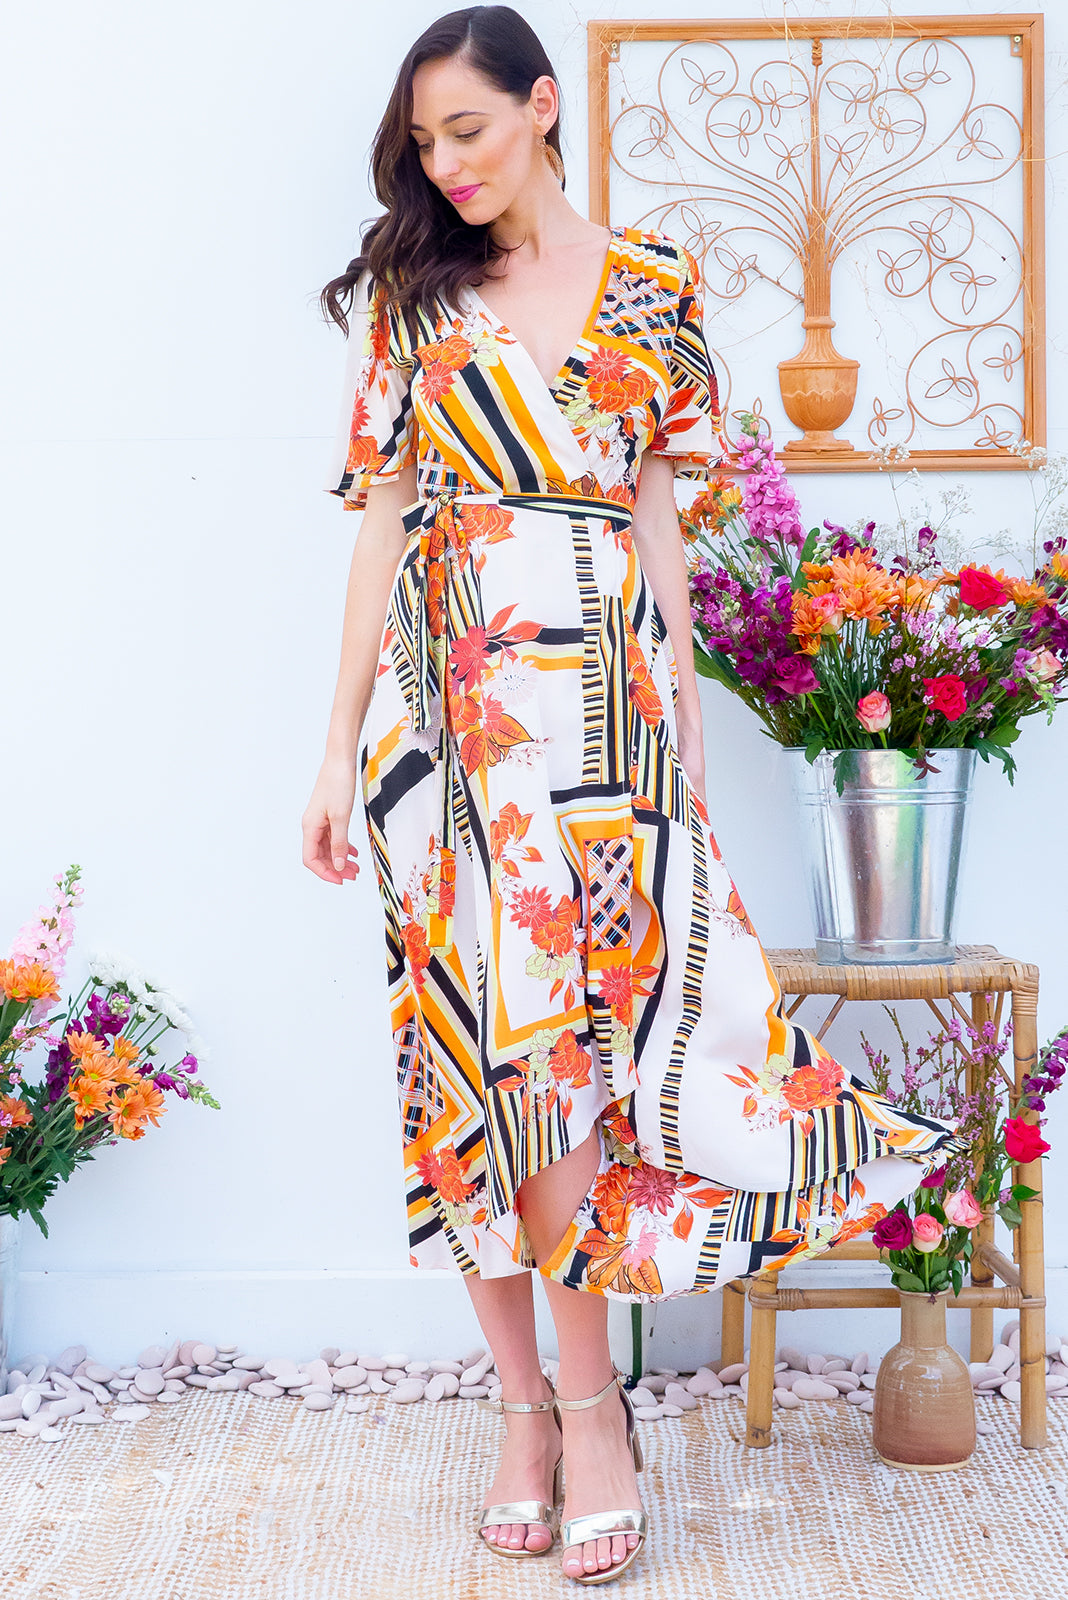 Petal Cider Gold Maxi Wrap Dress features a warm cream base with a black and orange vintage inspired floral bohemian print on a soft woven rayon it features petal sleeves, a wrap around waist and a waterfall hemline